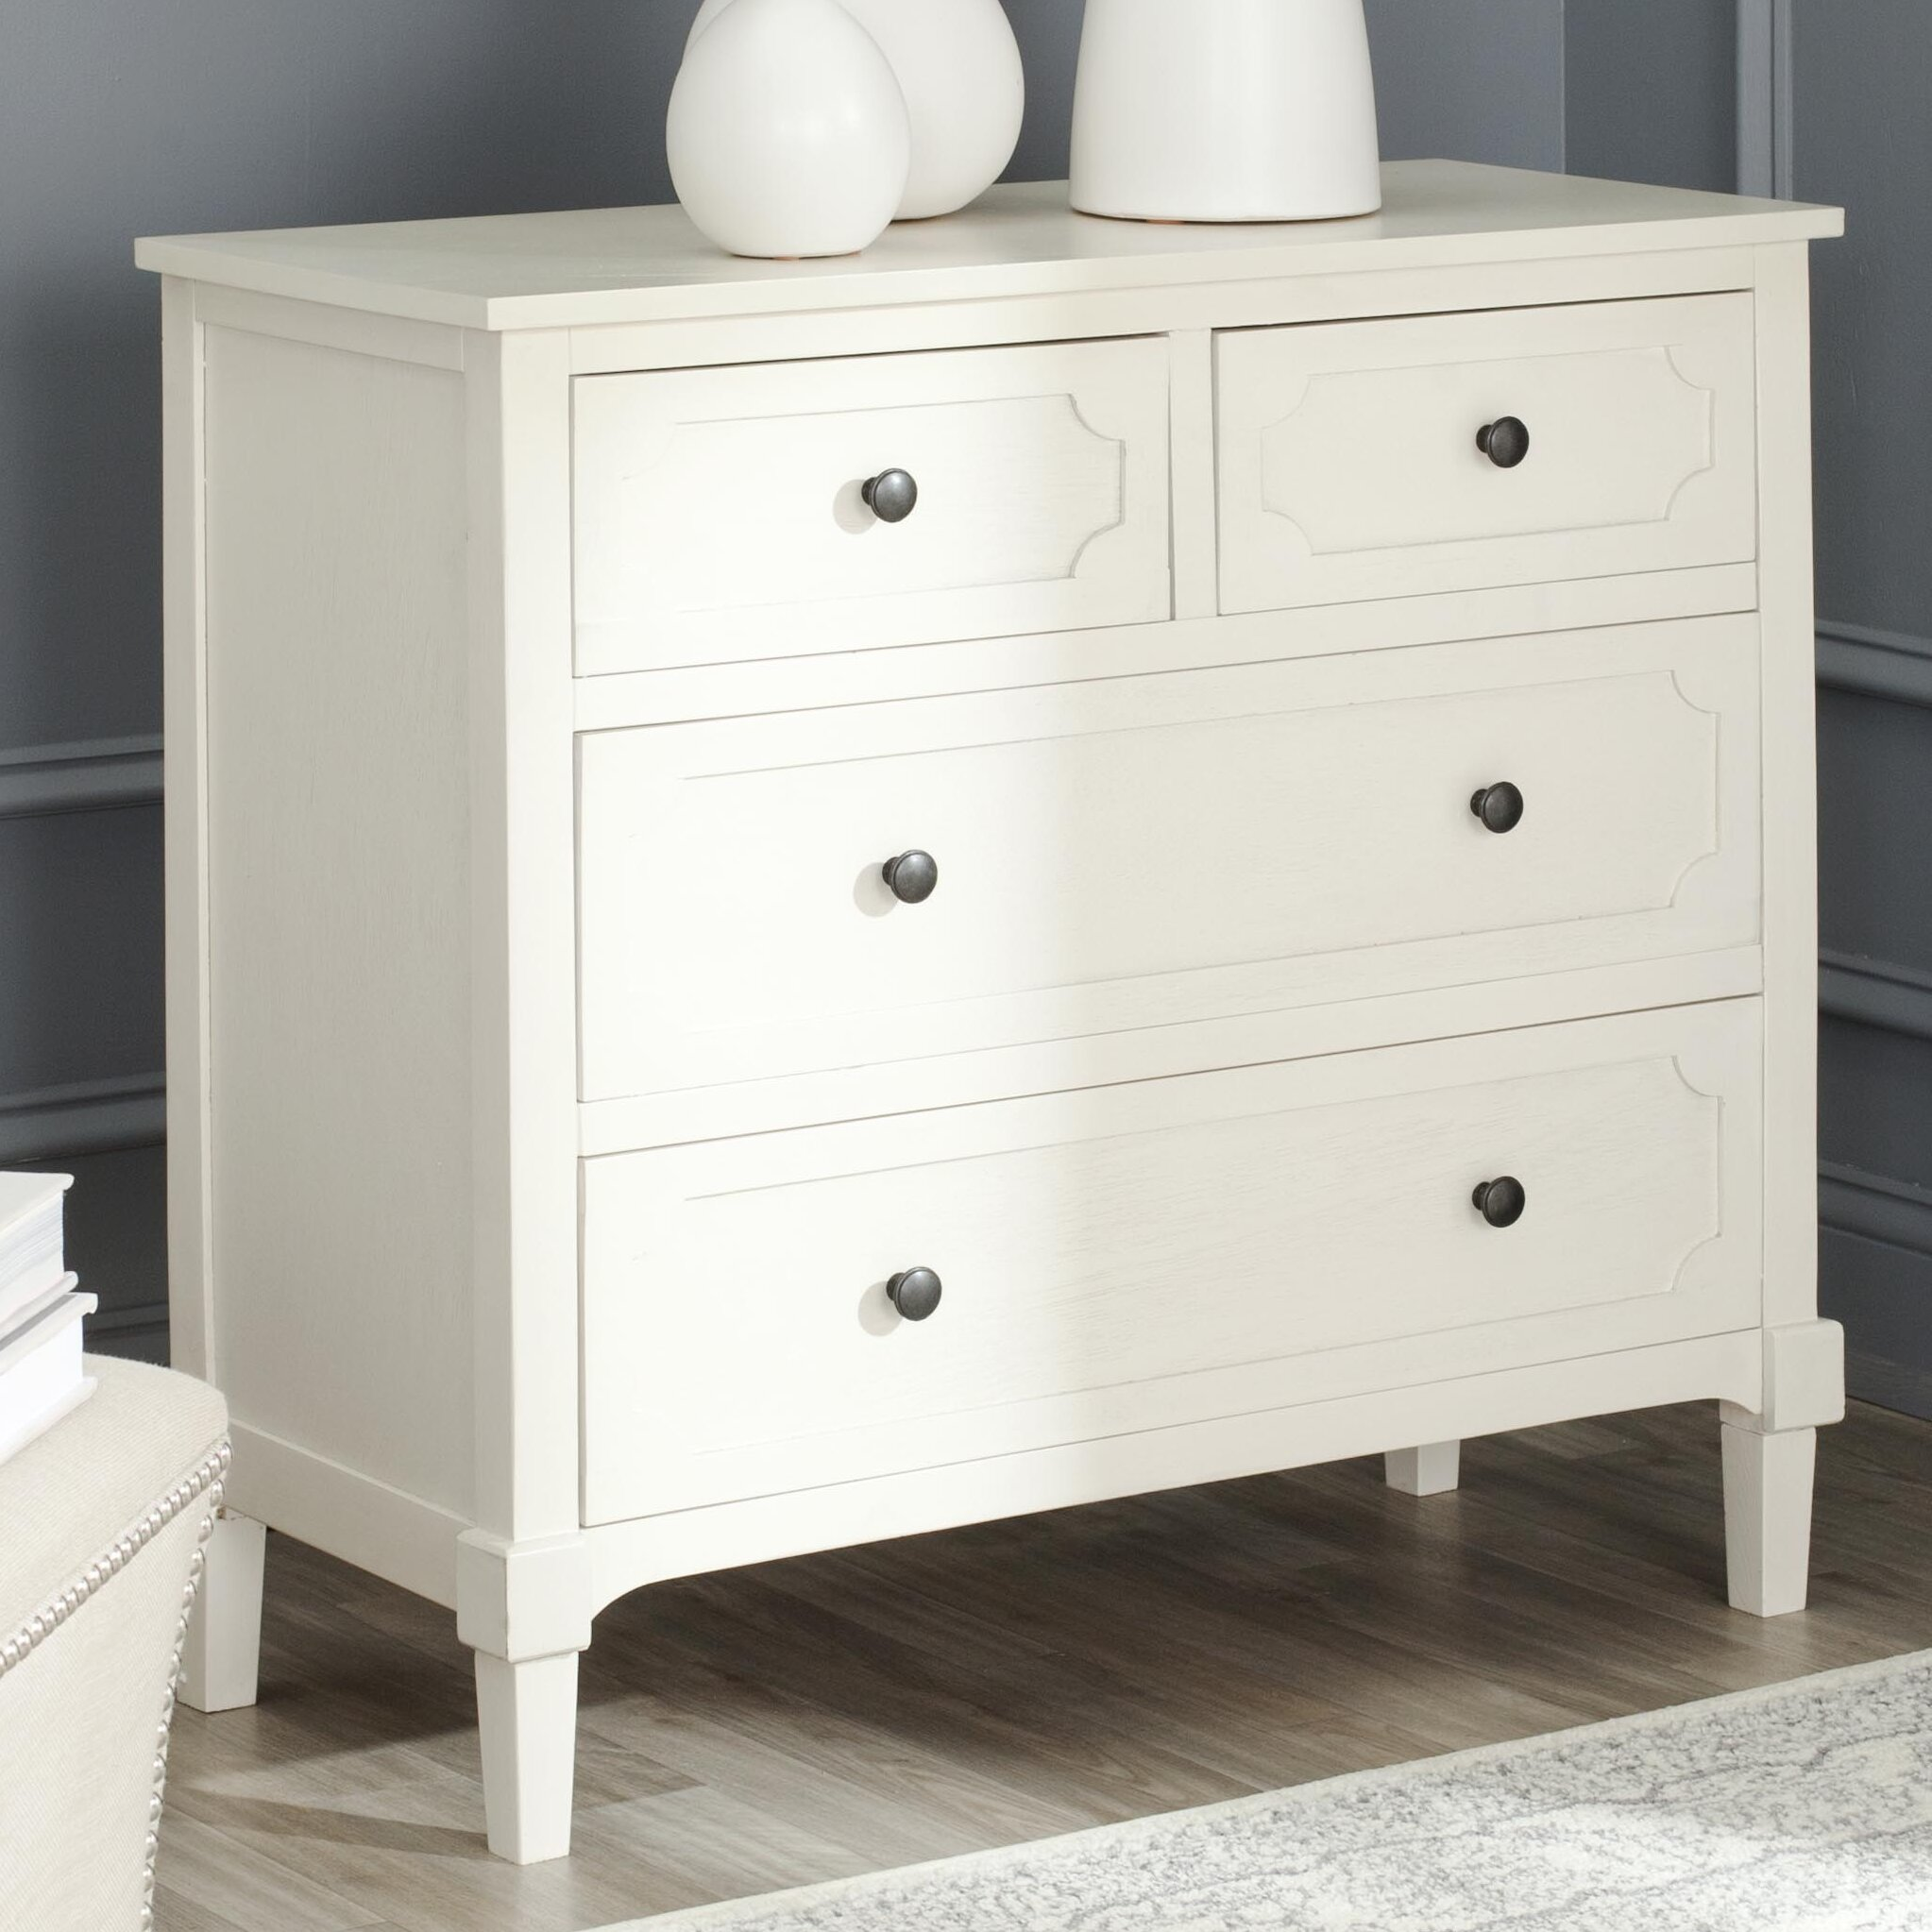 ip en dresser drawer four walmart mainstays canada